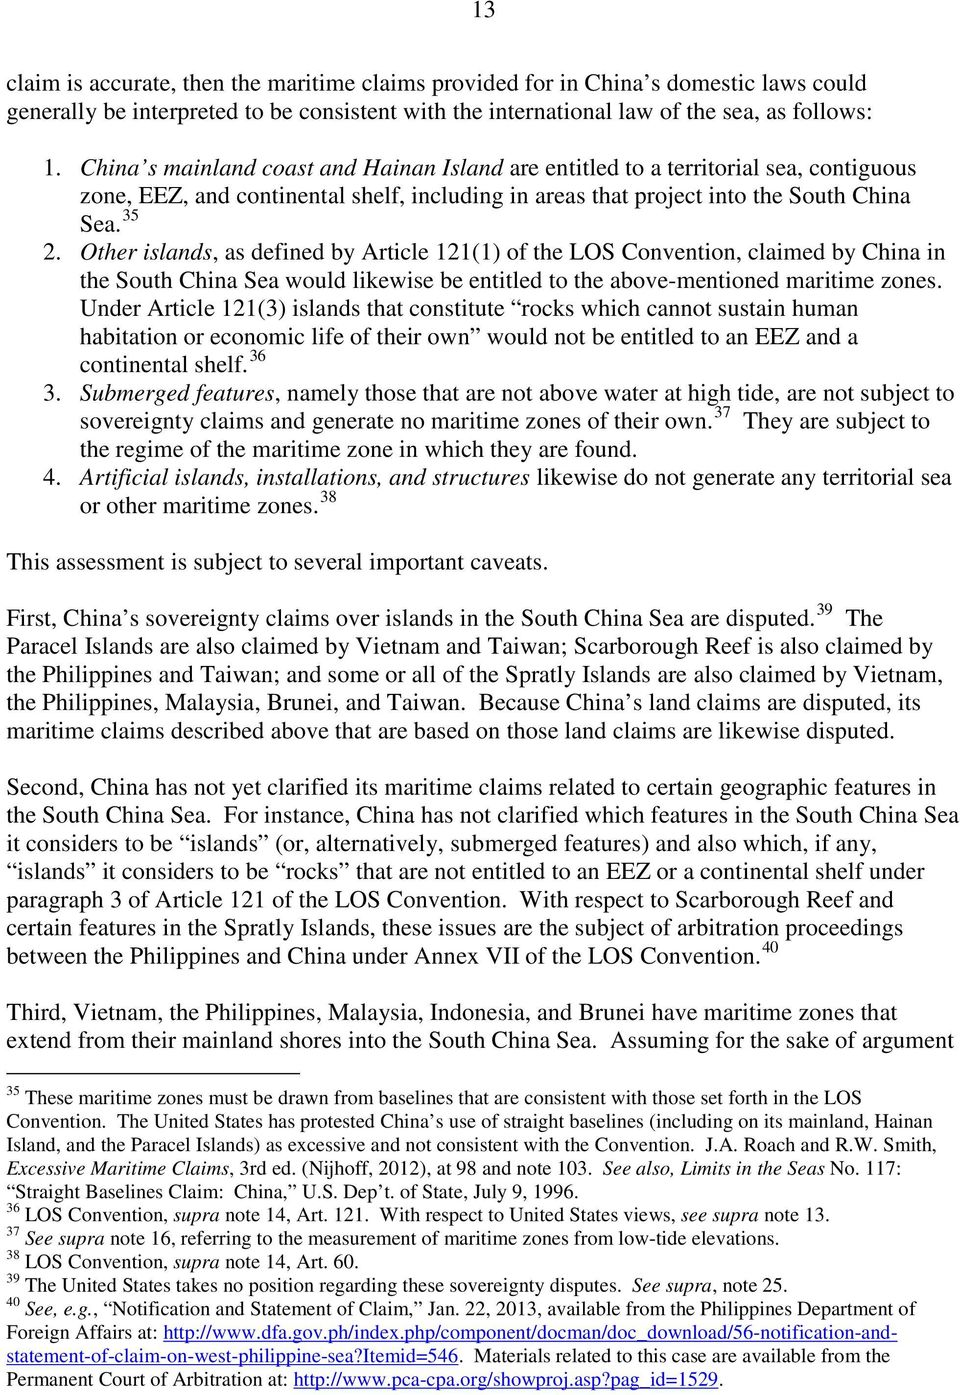 Other islands, as defined by Article 121(1) of the LOS Convention, claimed by China in the South China Sea would likewise be entitled to the above-mentioned maritime zones.